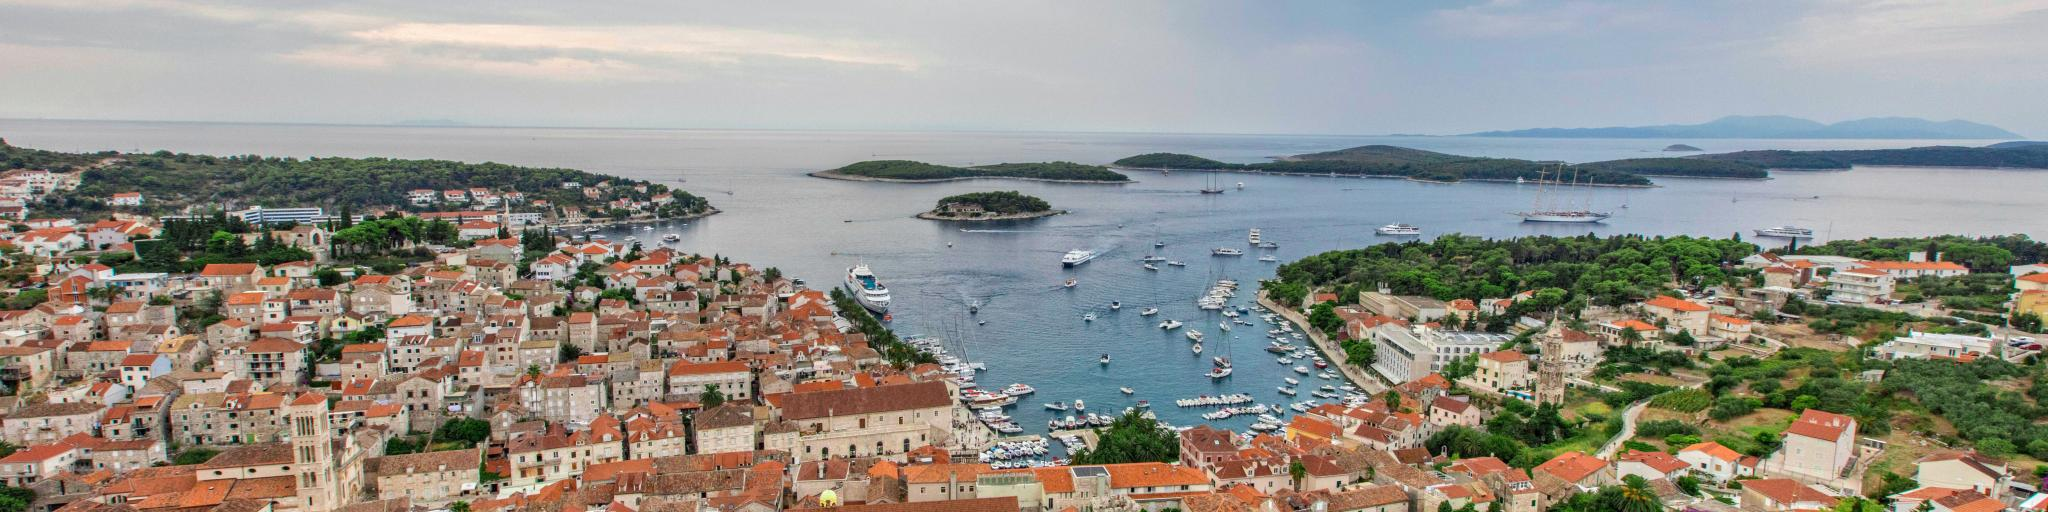 A bird's eye view of Hvar and the Adriatic Sea